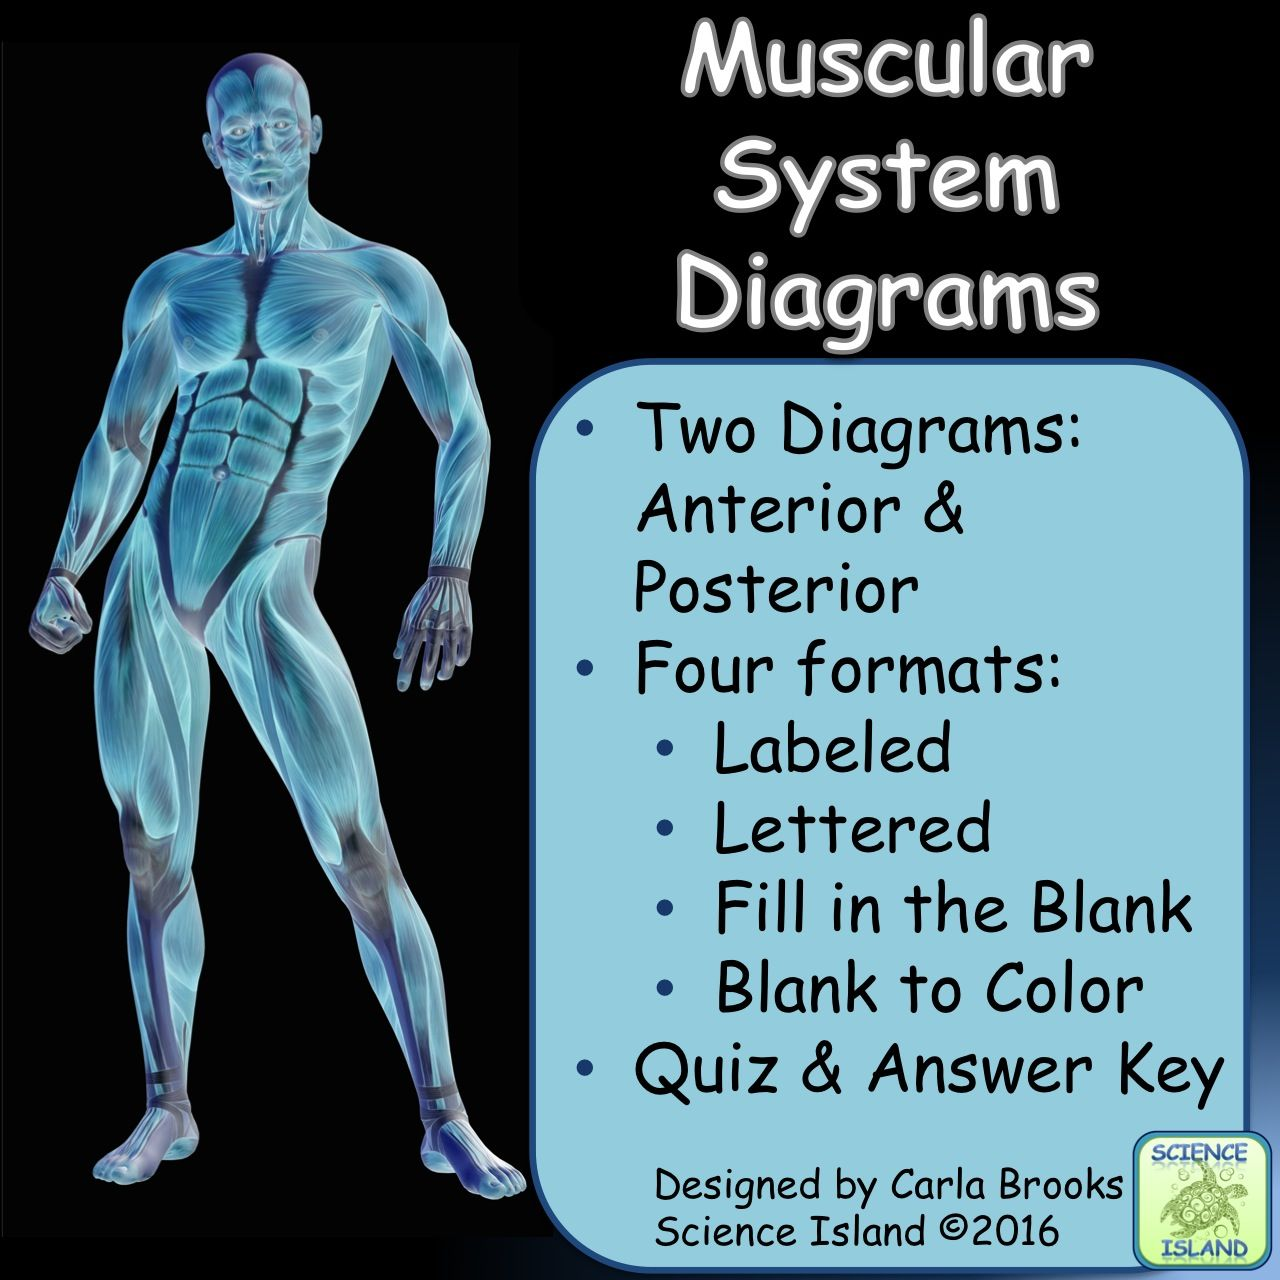 Muscular System Diagrams Study Label Quiz Color School Full Body Muscle Diagram Anatomy Muscles Labeled This Product Contains 2 Skeletal One Anterior And Posterior In 4 Different Formats For A Total Of 8 High Quality Drawings